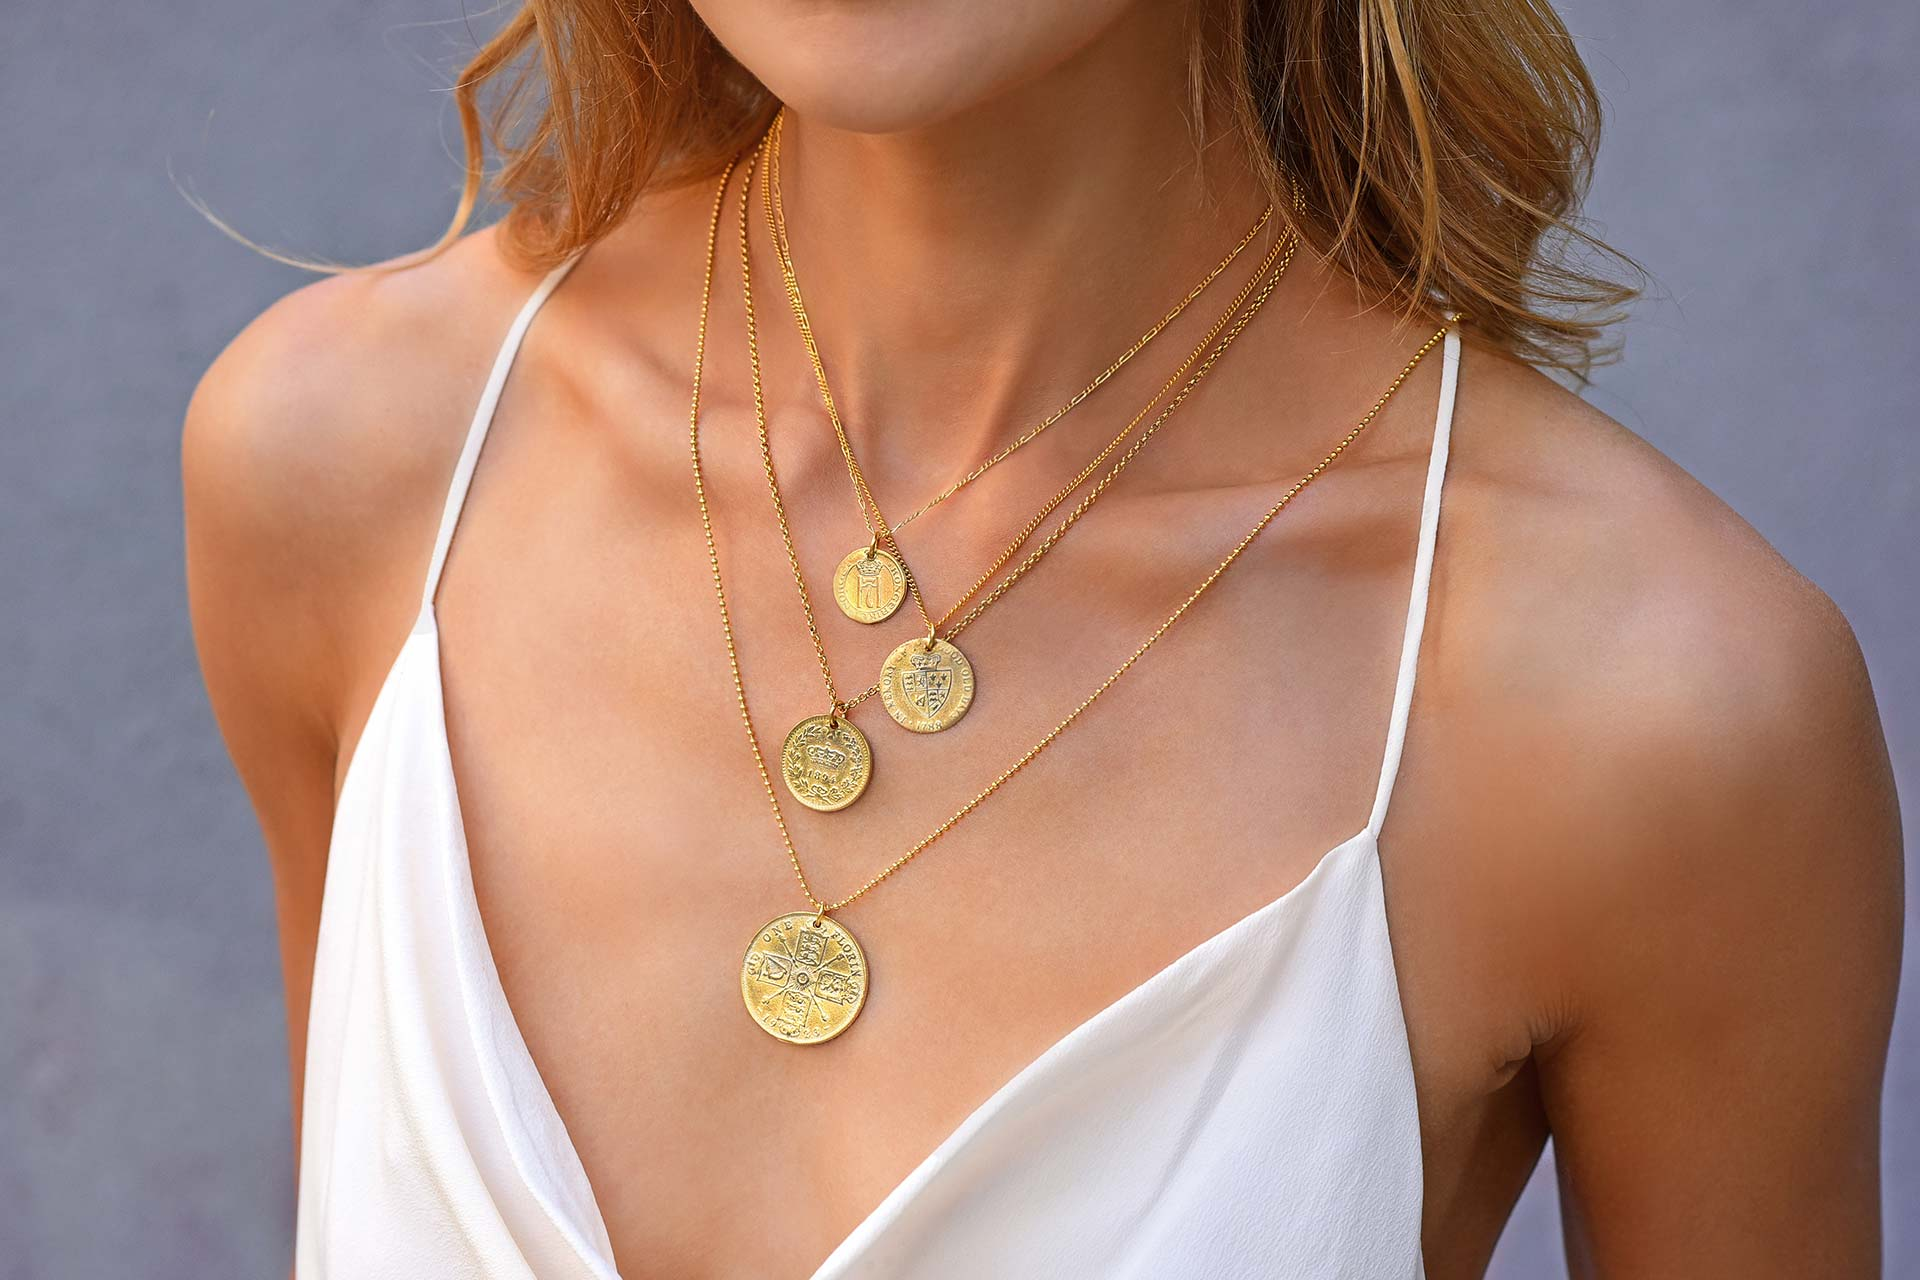 a woman wearing 4 golden charm necklaces